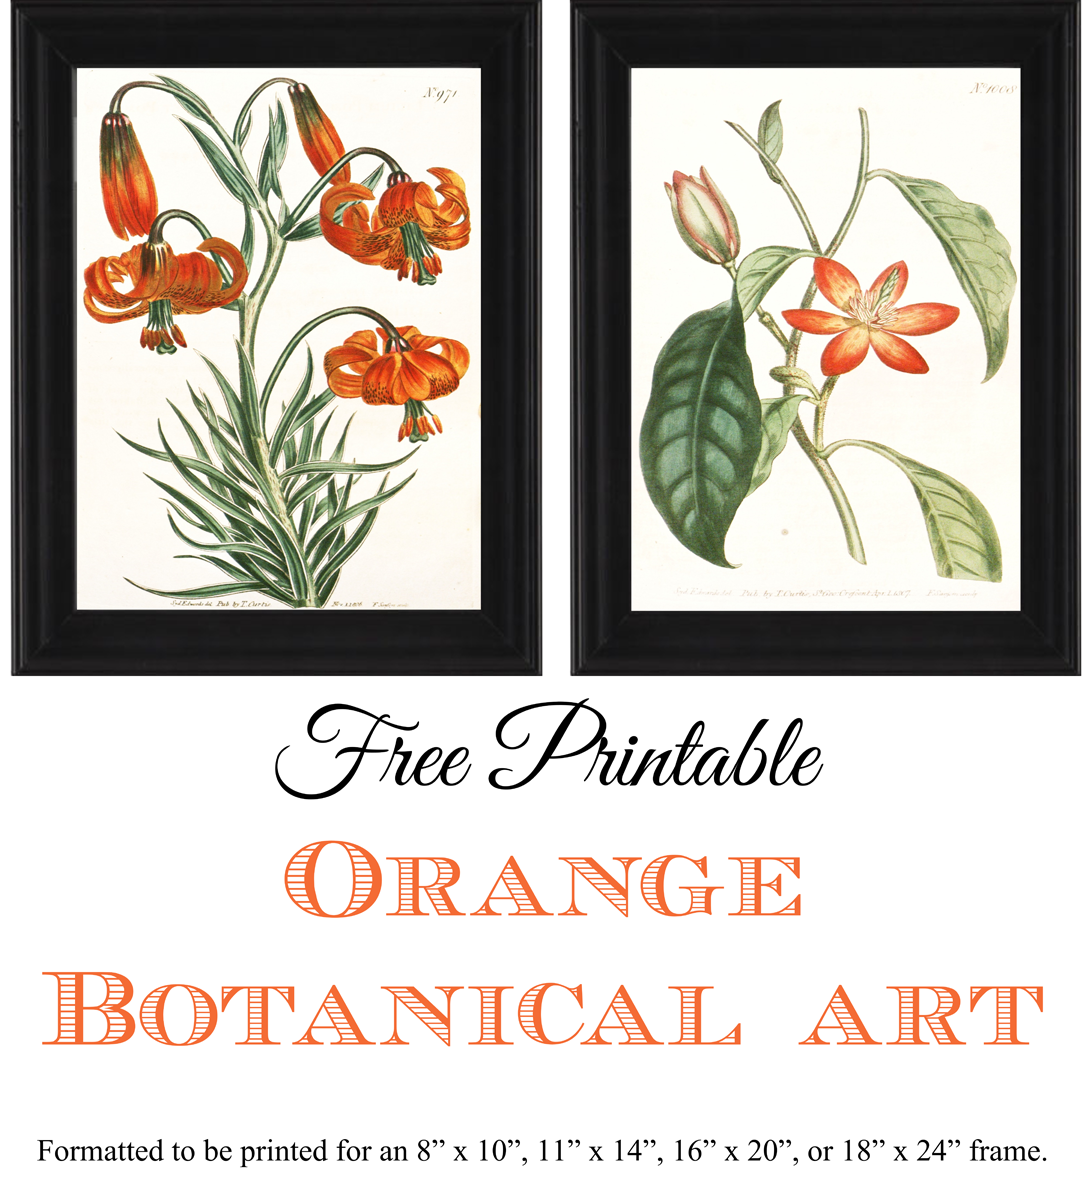 photo about Free Printable Artwork to Frame titled Cost-free Printable Orange Botanical Artwork